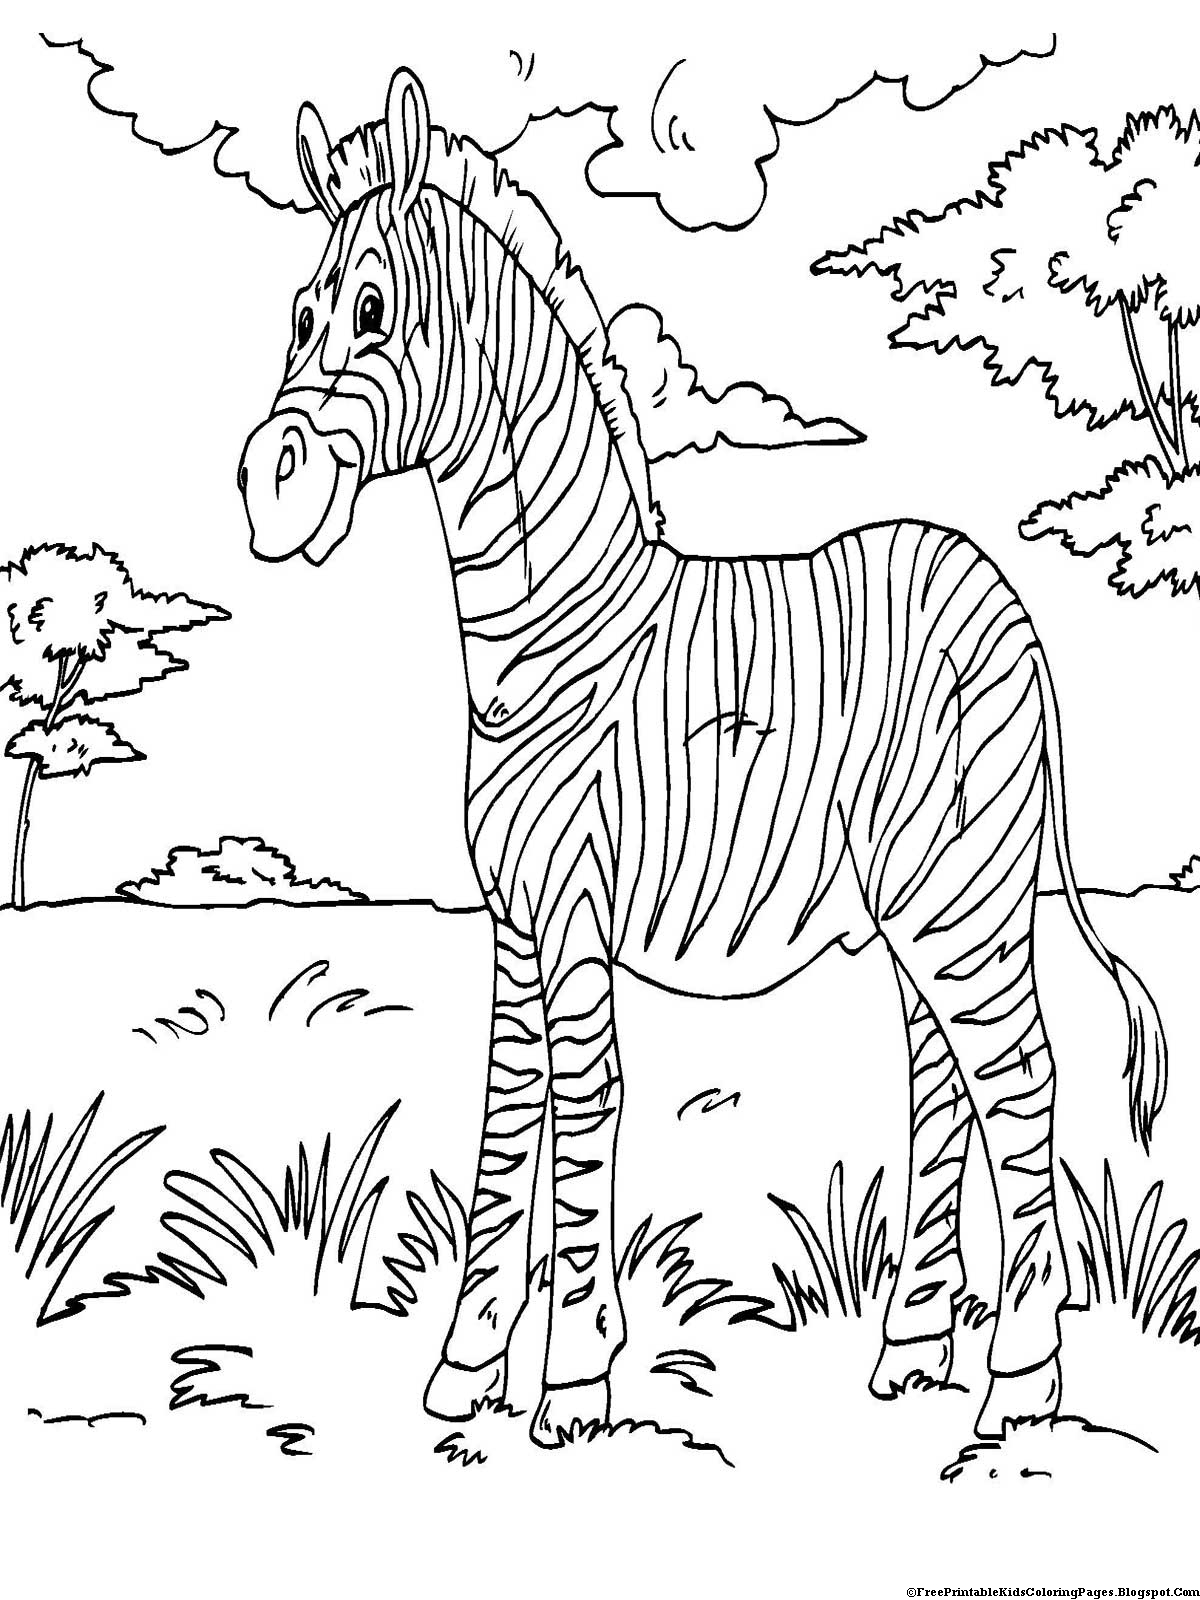 coloring printouts for kids 30 best coloring pages for kids we need fun kids printouts coloring for